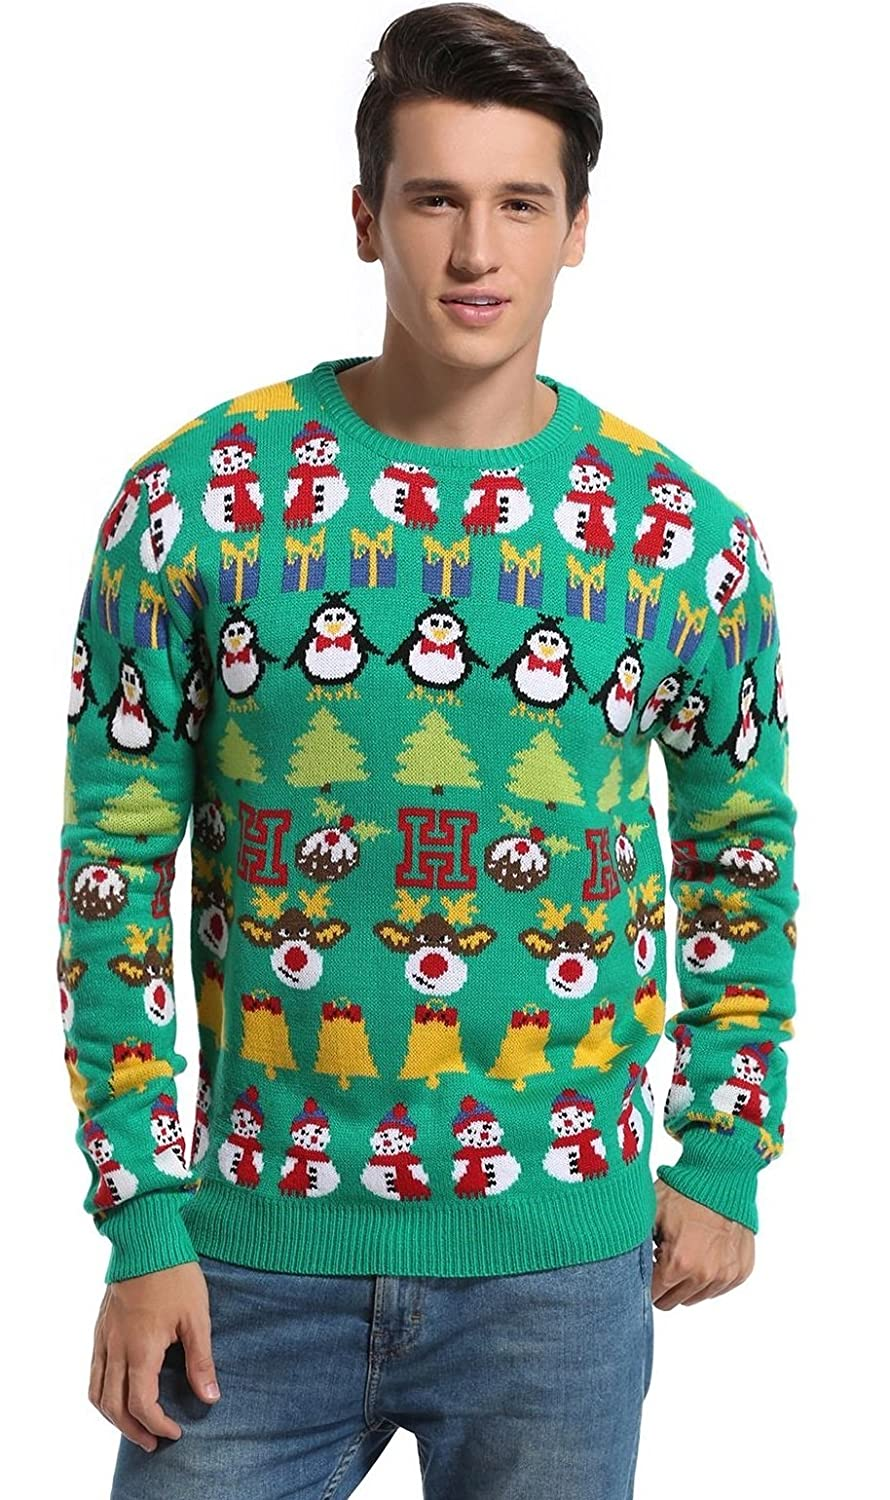 b86fe4ad066a Top 10 wholesale Ugly Cute Christmas Sweaters - Chinabrands.com